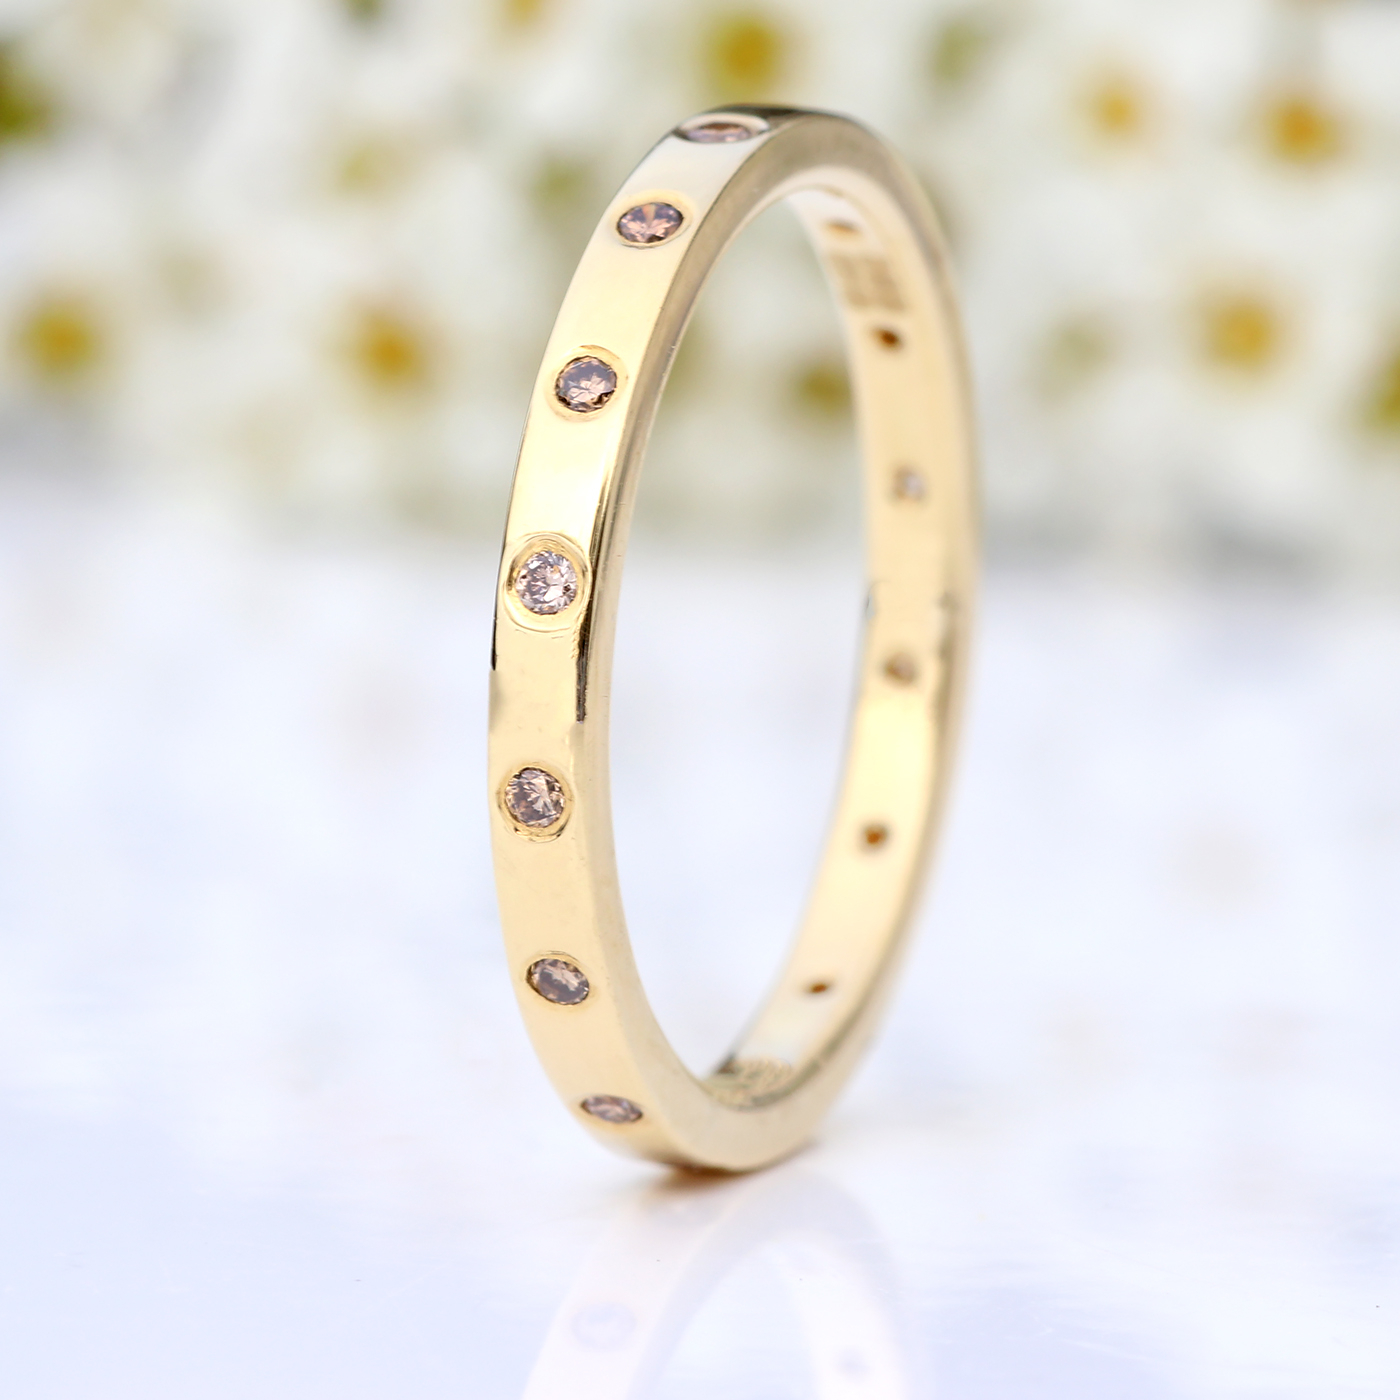 Slim Champagne Diamond Eternity Ring With Regard To Most Current Champagne And White Diamond Edge Anniversary Bands In Rose Gold (View 15 of 25)